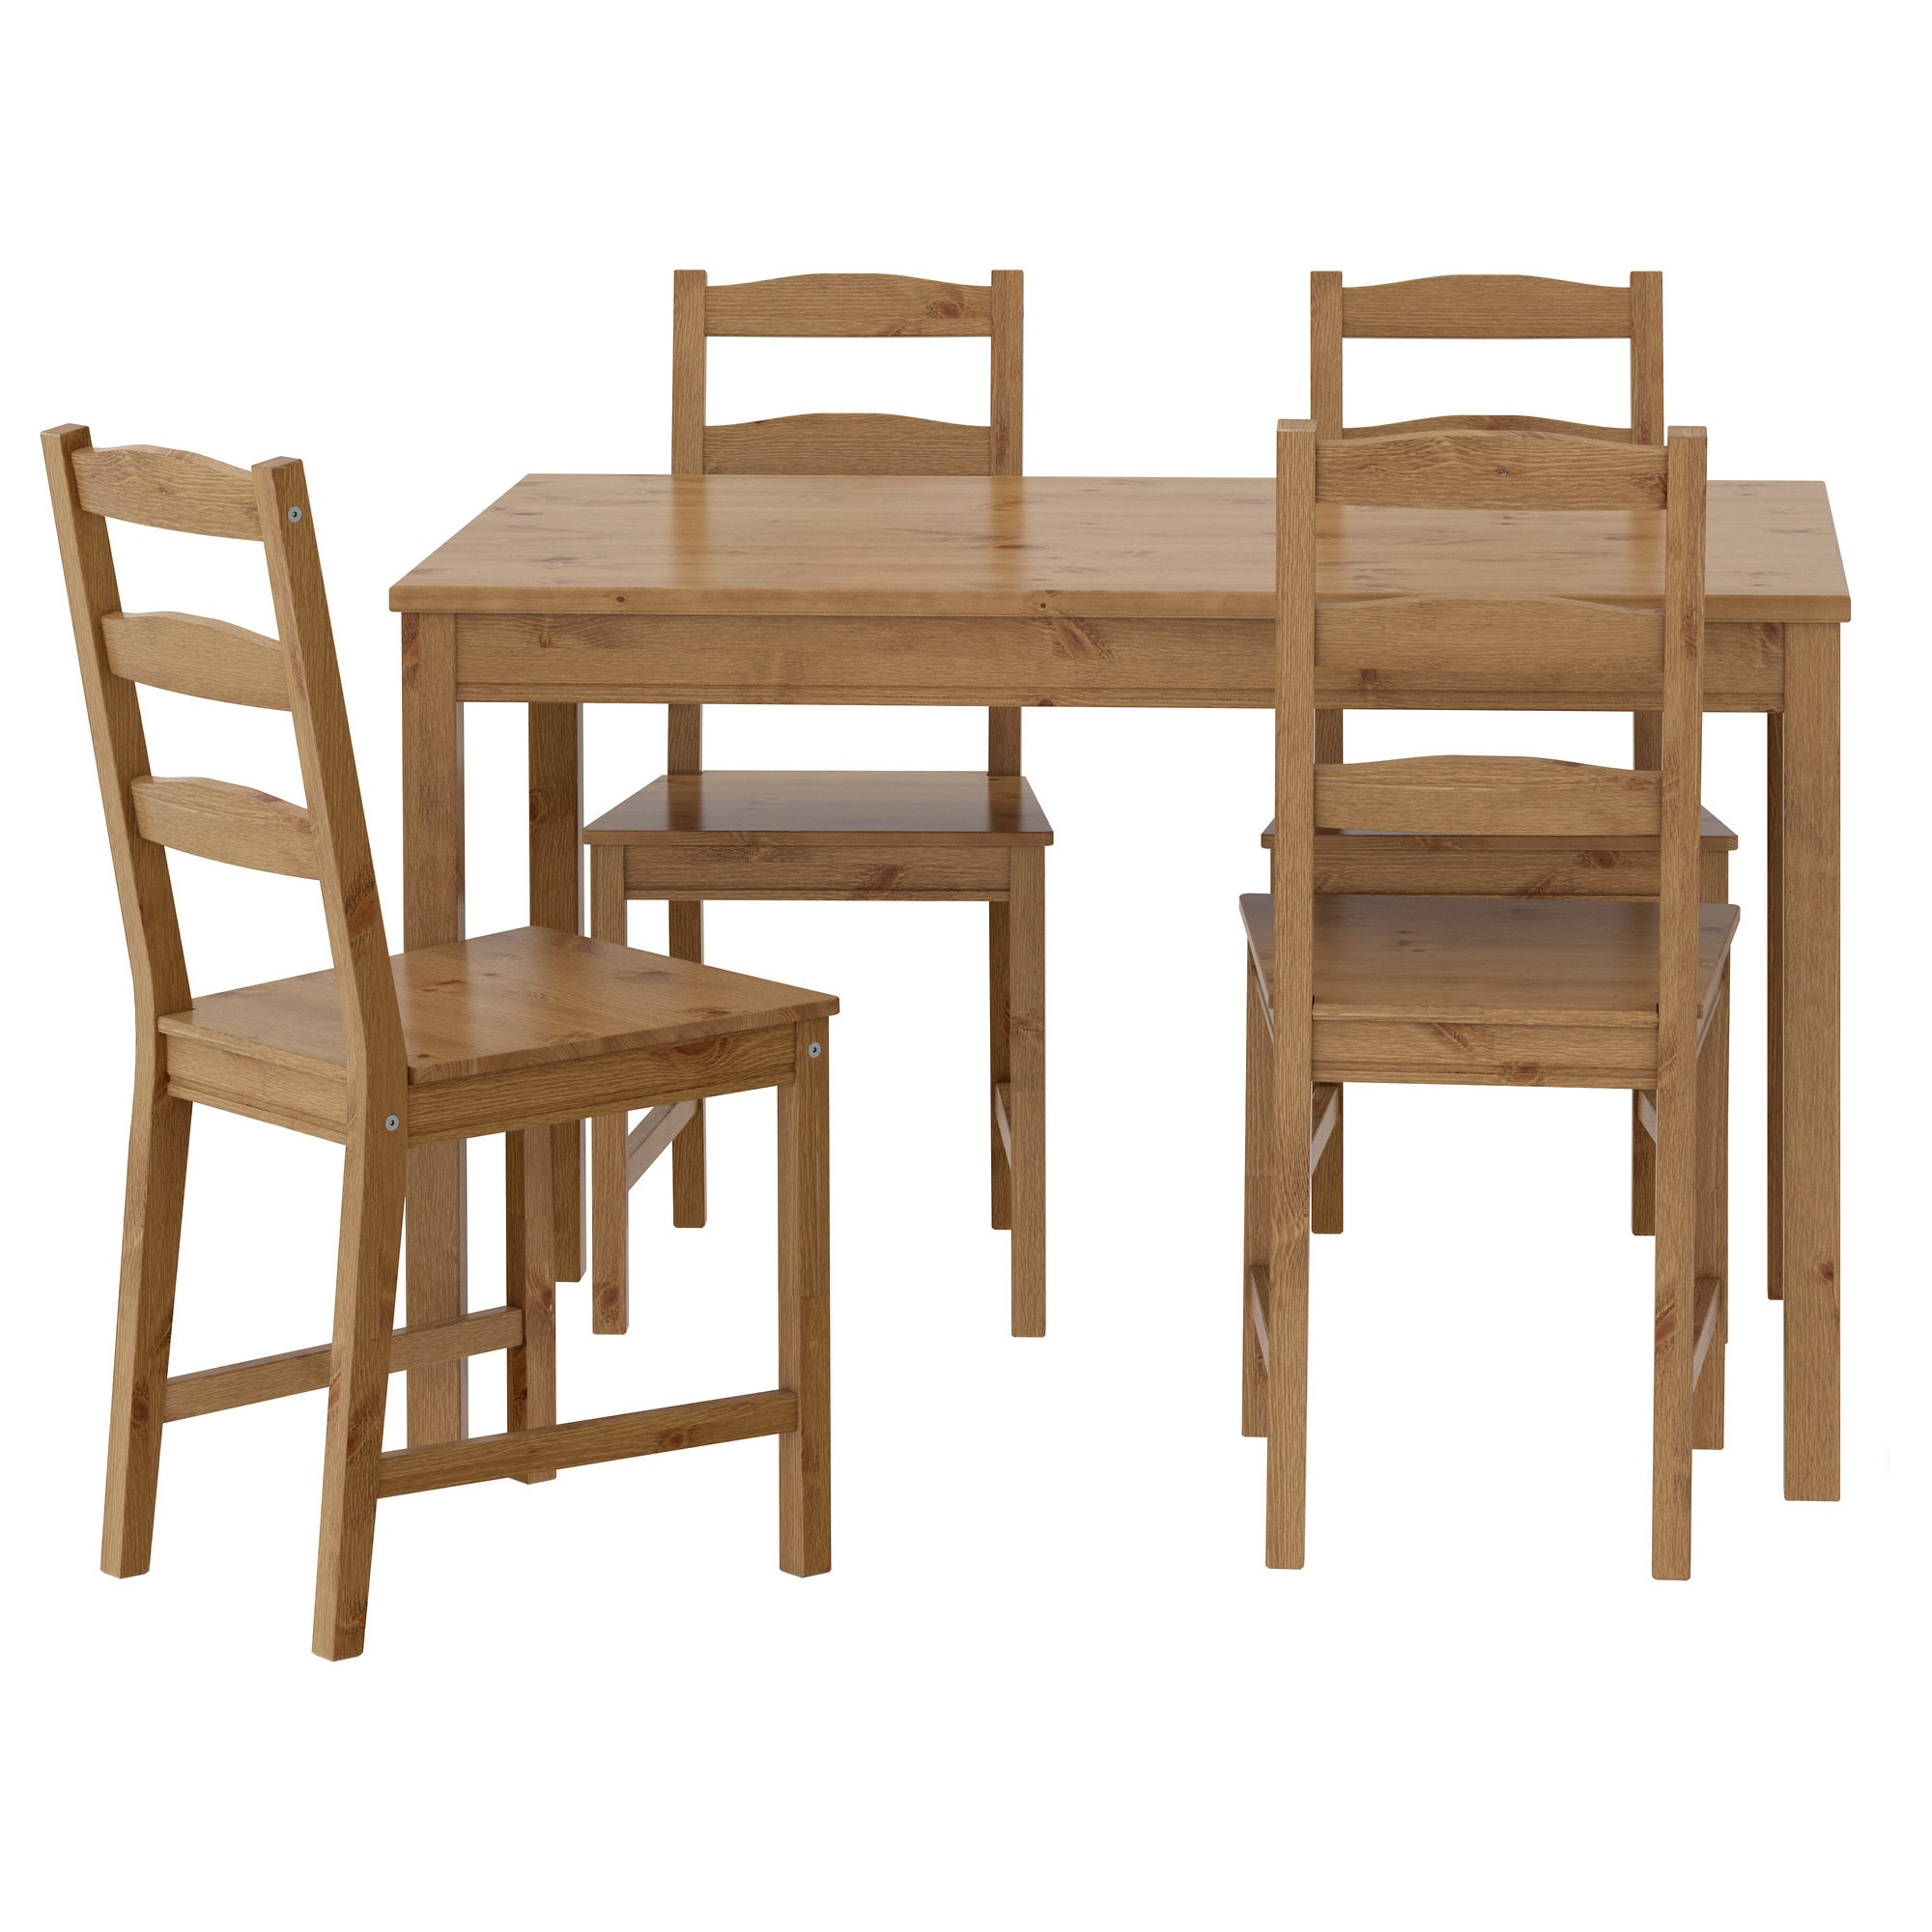 Ikea Bank Hotline Ikea Jokkmokk Antique Stain Table And 4 Chairs Philly Home